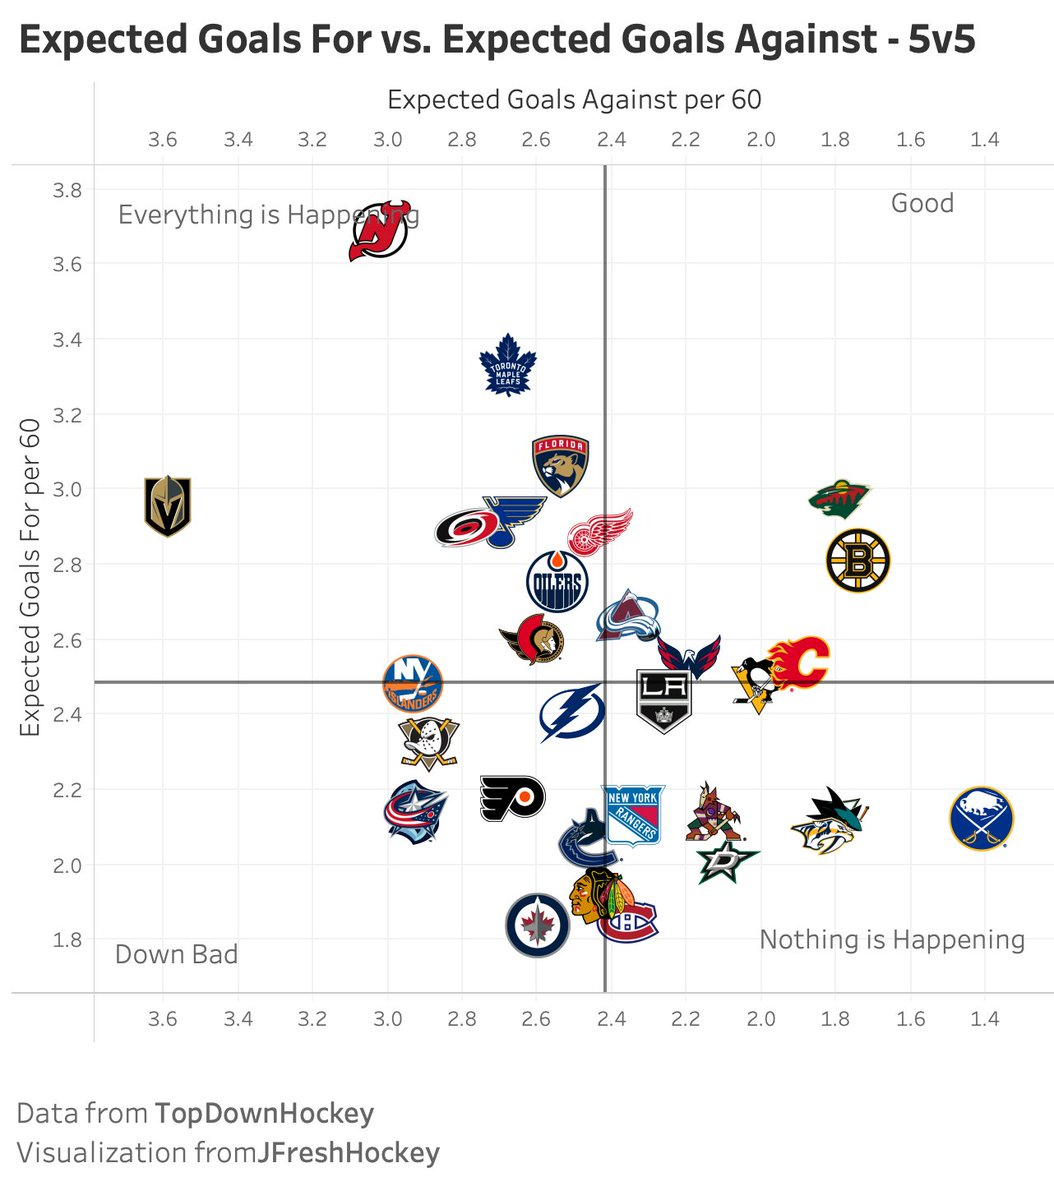 5v5 Expected Goals For vs. Against - October 25  #mnwild and #NHLBruins are lonely in the two-way category. #SeaKraken, #CBJ, #GoJetsGo stink.  #LeafsForever, #NJDevils, and esp. #VegasBorn are playing high-event hockey. #LetsGoBuffalo, #SJSharks, and #Preds keeping it boring. https://t.co/QfcnLCYyq9.